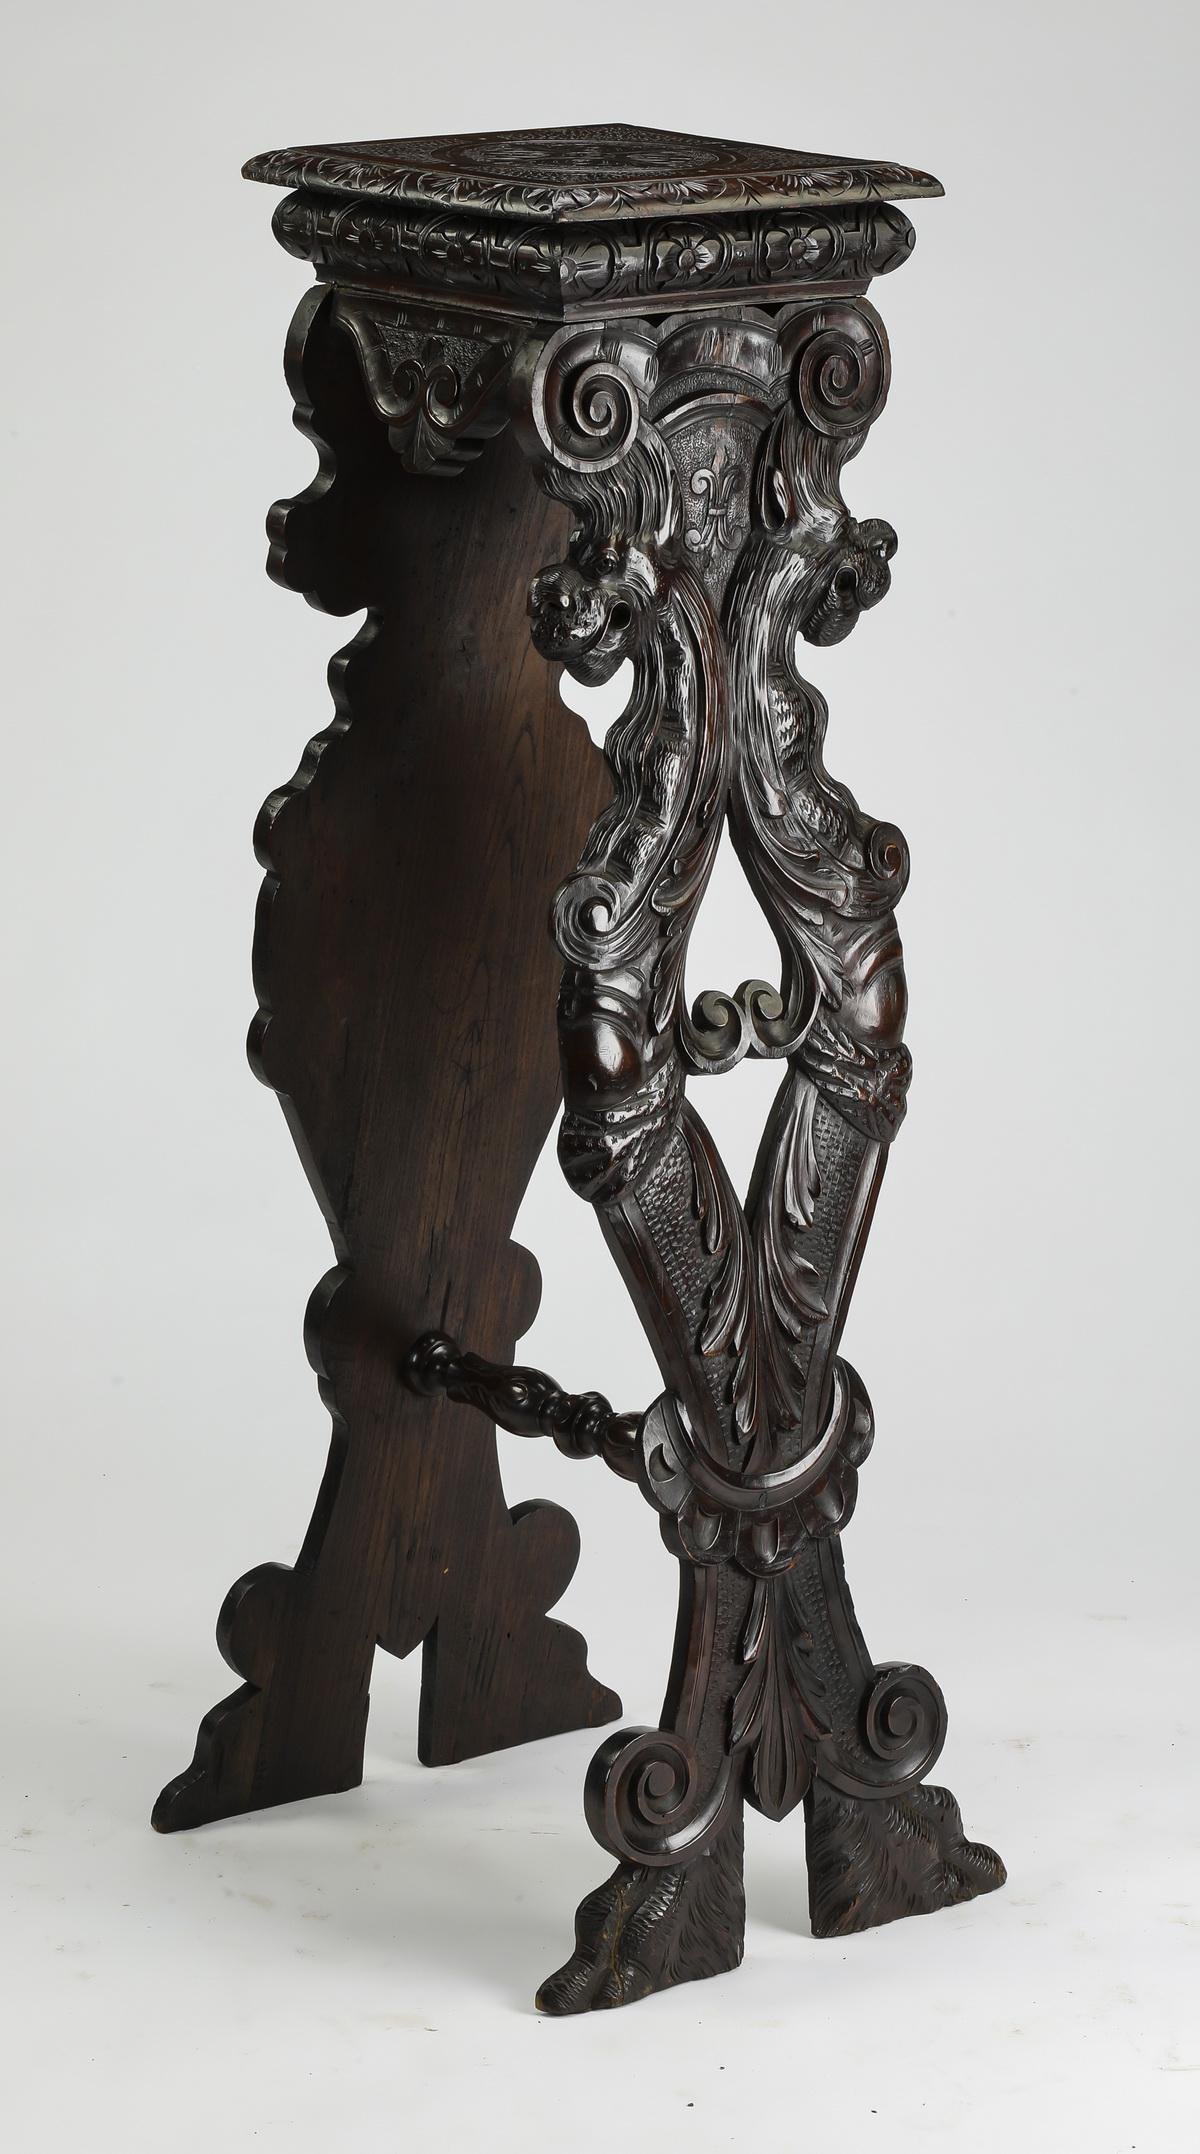 19th c. French Renaissance Revival style walnut stand